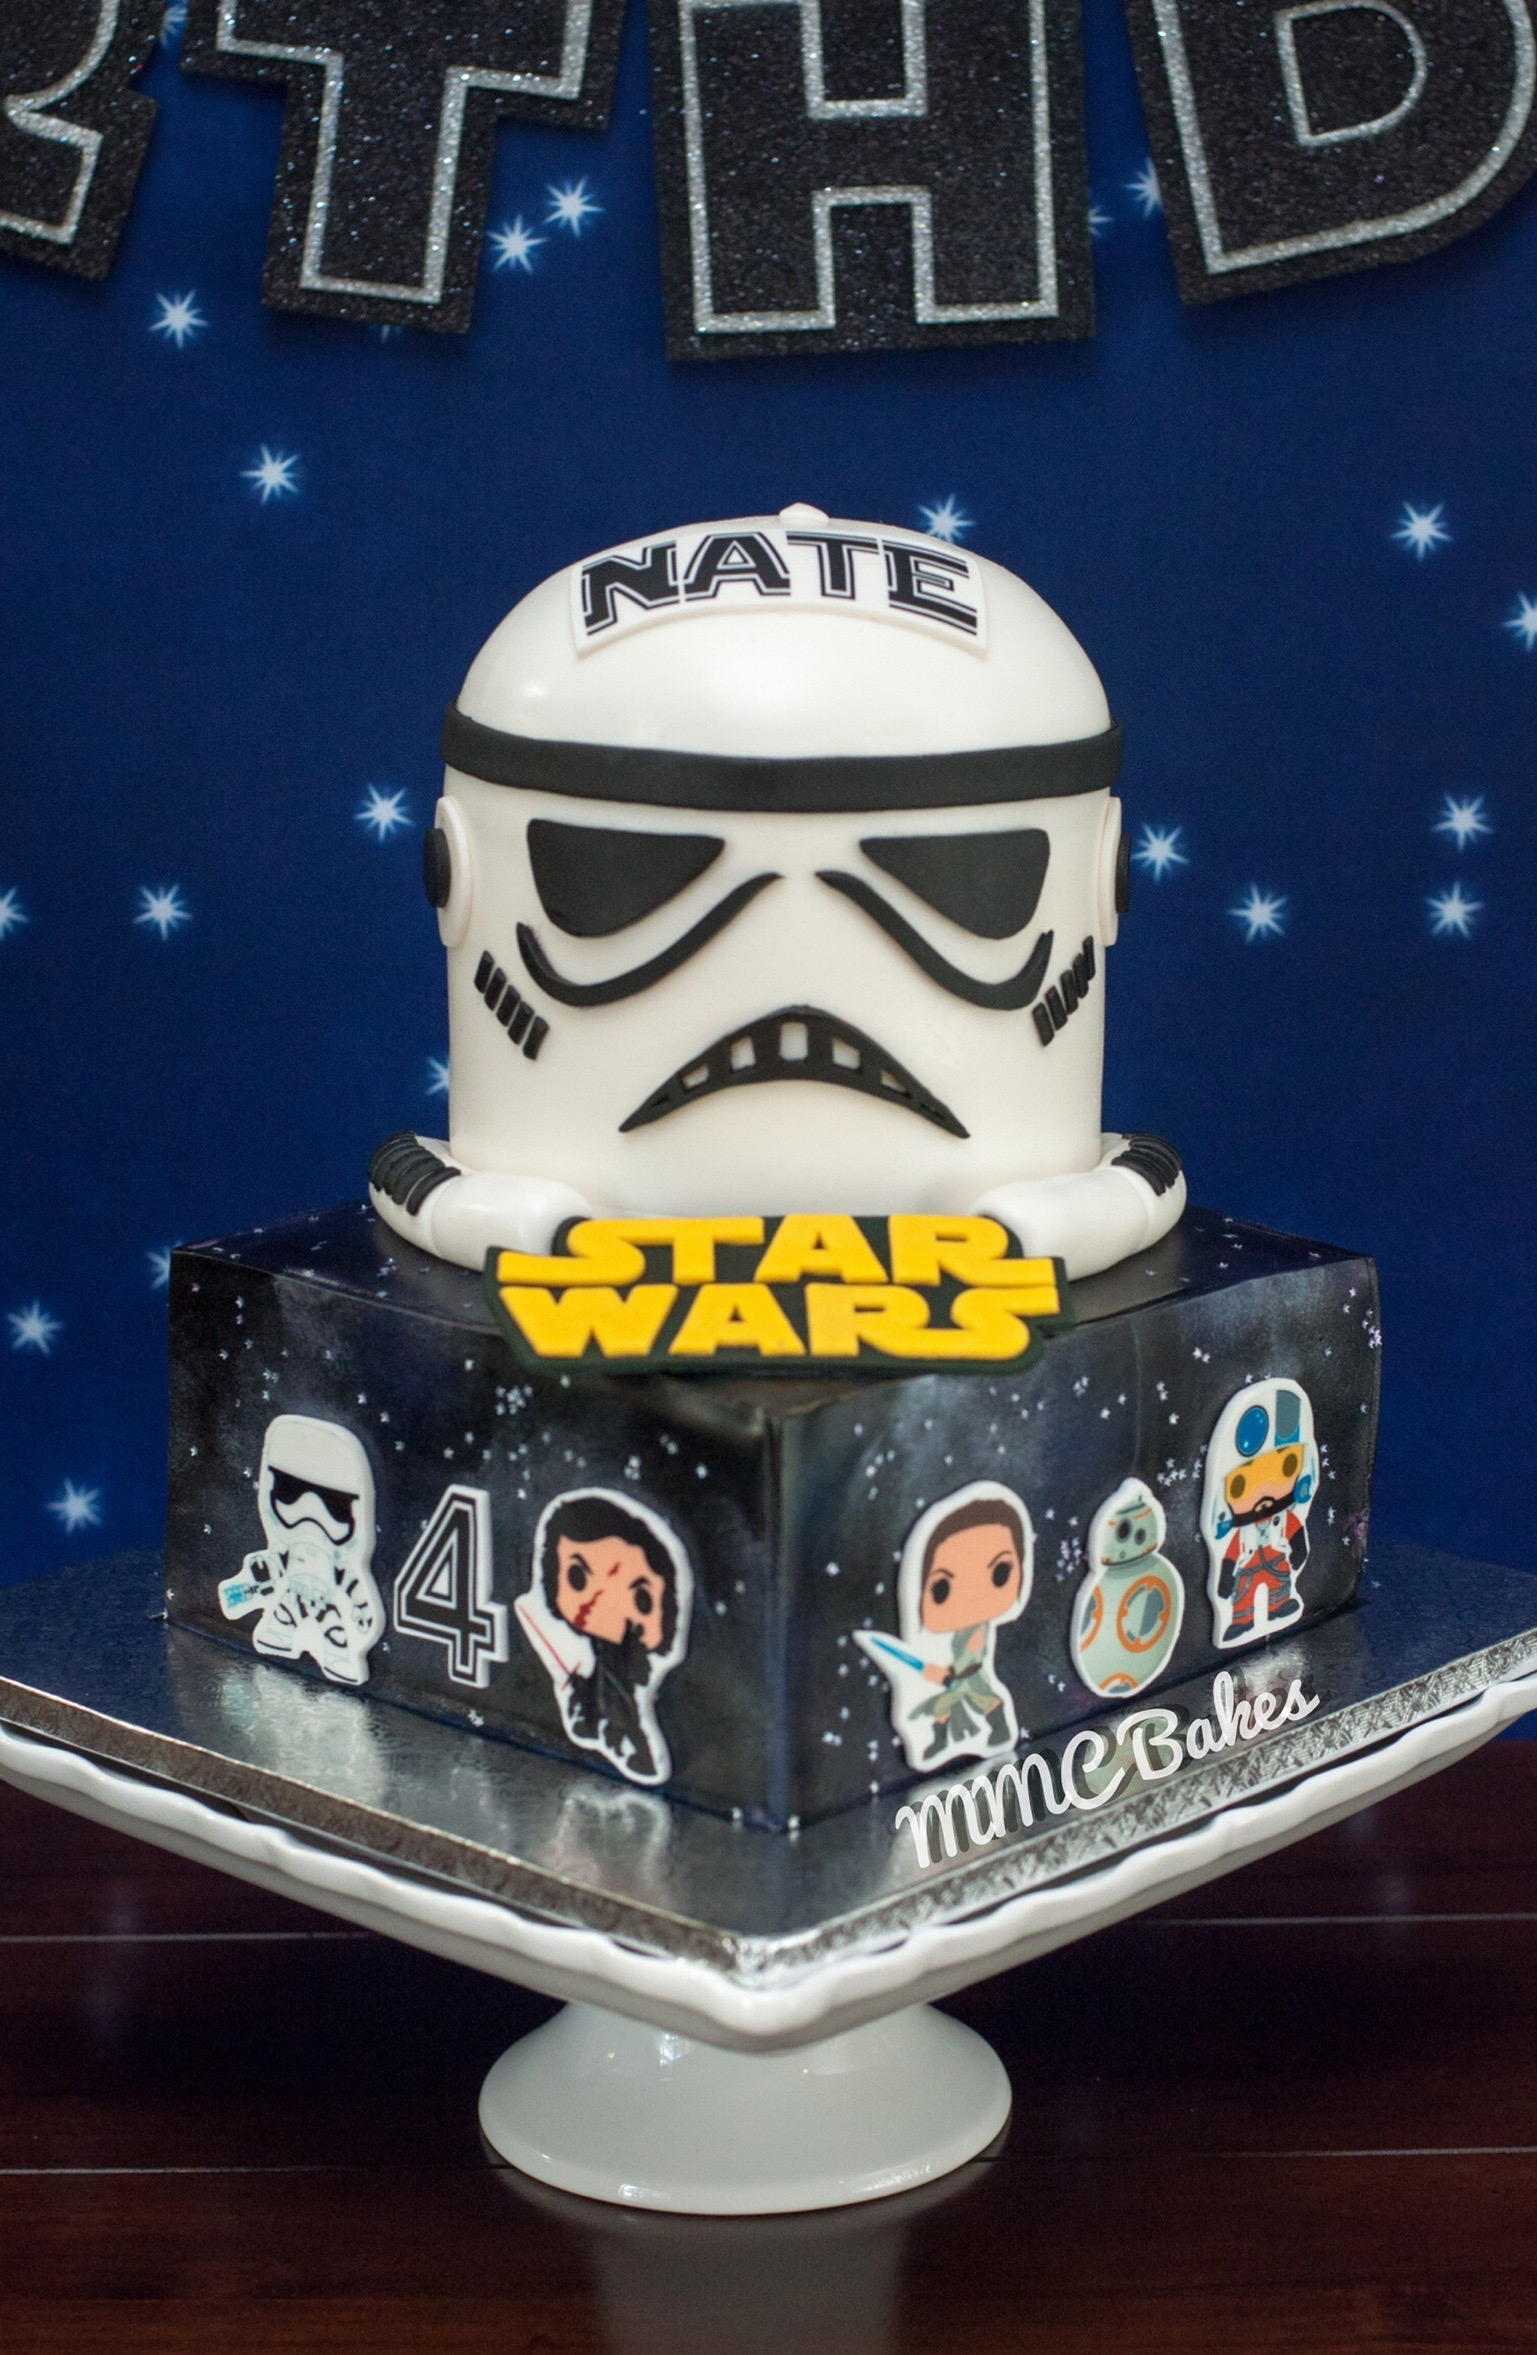 Surprising Star Wars Birthday Cakes Mmc Bakes Birthday Cards Printable Riciscafe Filternl